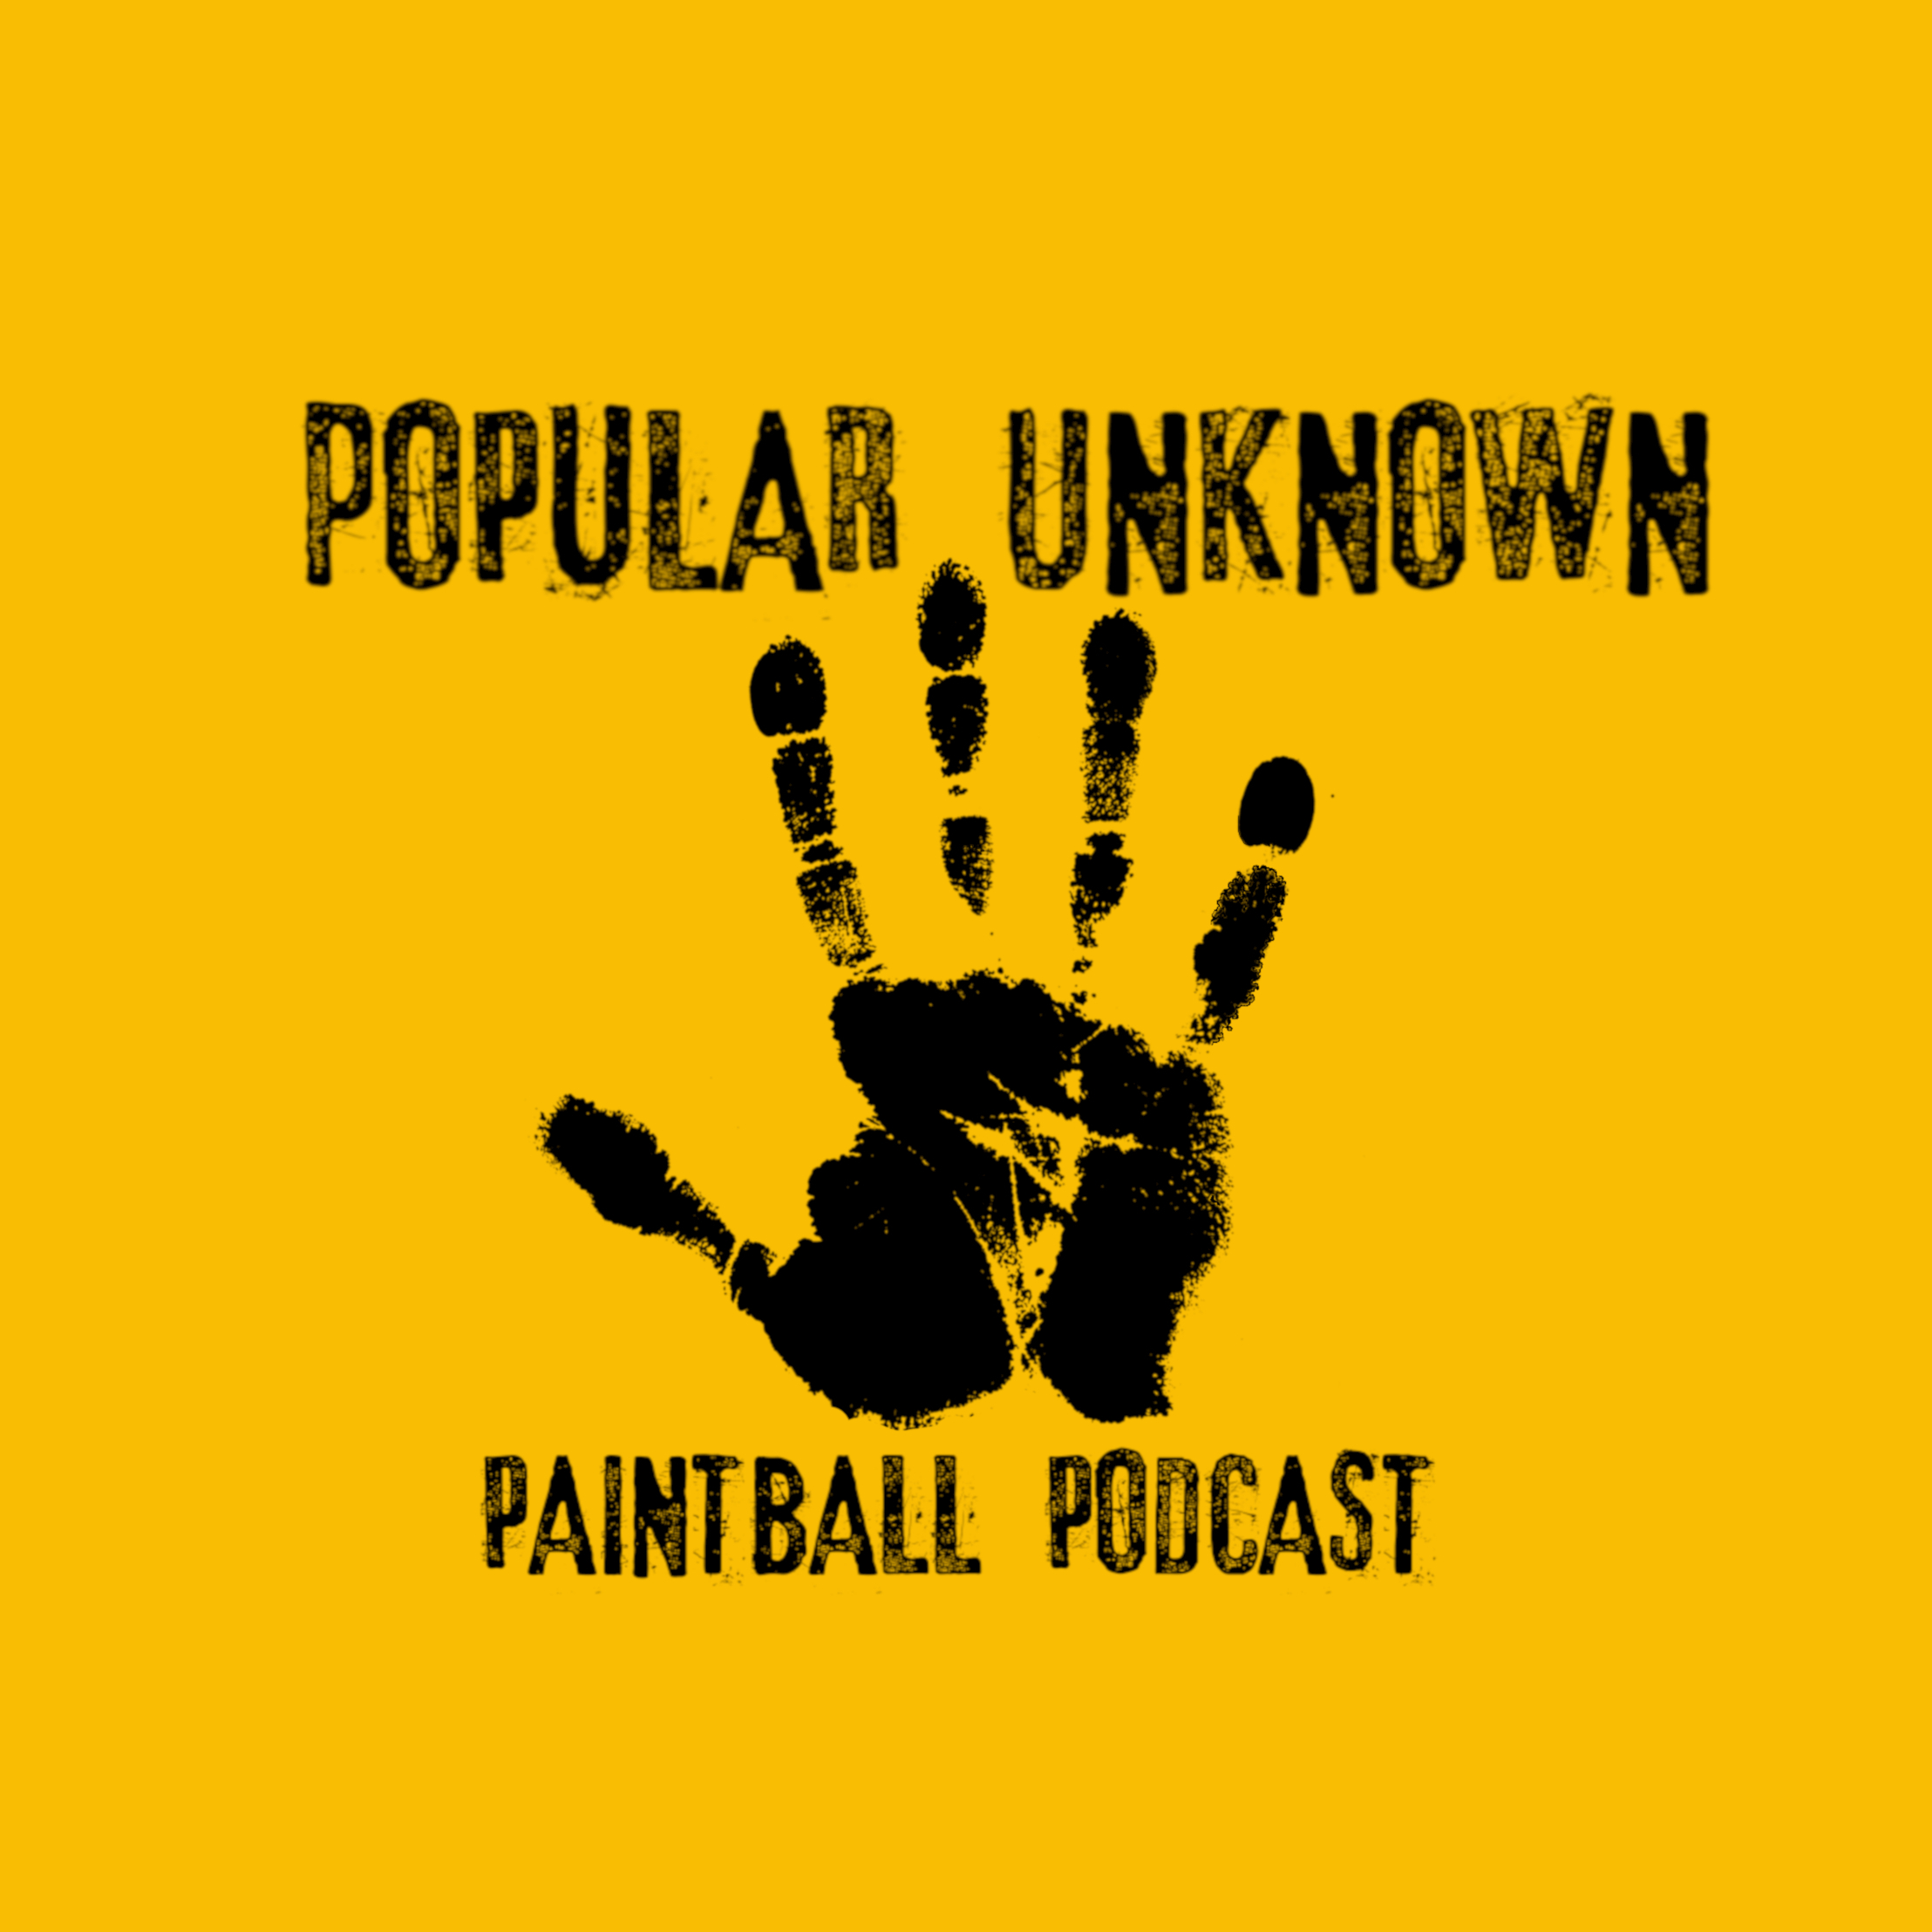 Popular Unknown Paintball Podcast show art